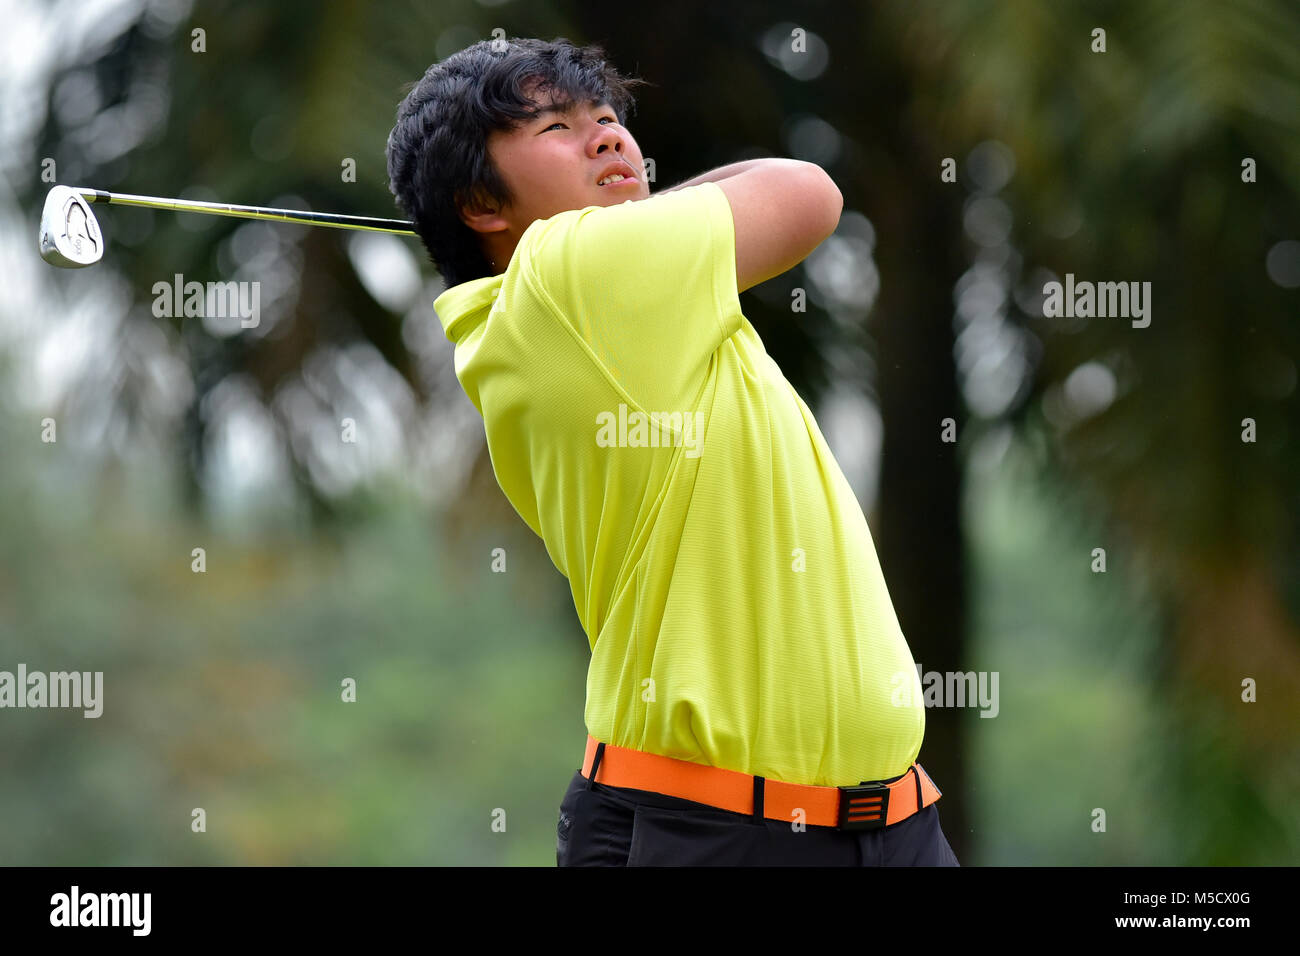 Danau, UKM Bangi - FEBRUARY 10: Ryan Wei Jian takes his tee shot on the 6th hole during Round One of the Danau Junior - Stock Image